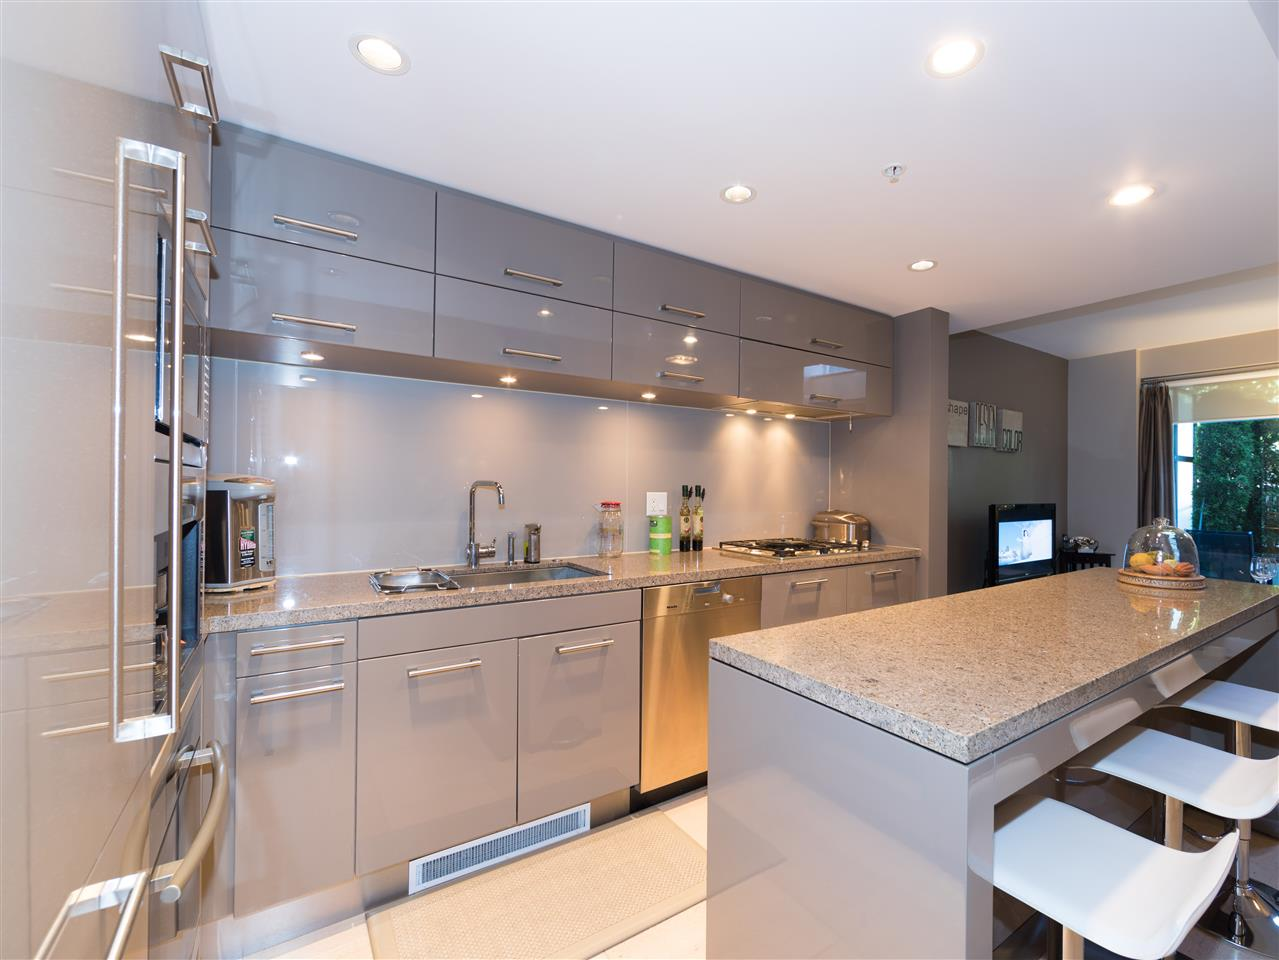 Condo Apartment at TH8 5991 WALTER GAGE ROAD, Unit TH8, Vancouver West, British Columbia. Image 12